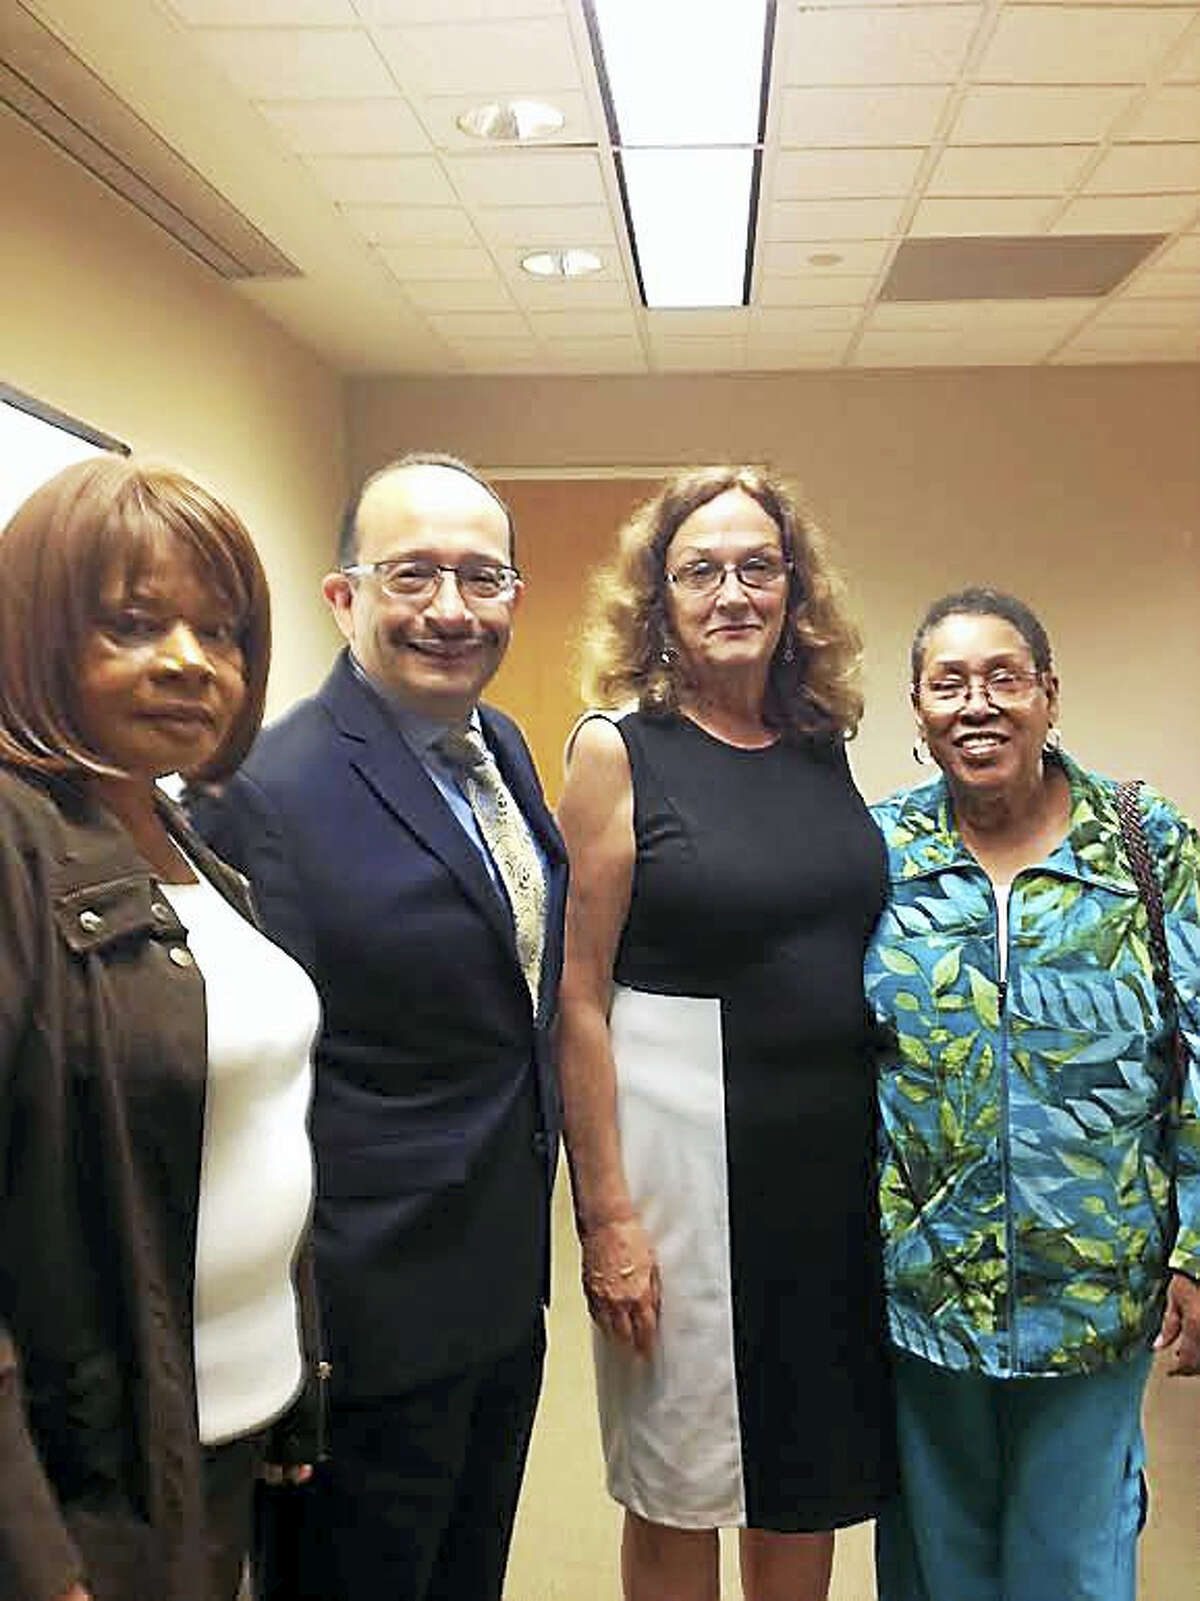 The Commission on Equal Opportunities has hired Angel Fernandez-Chavero, second from left, as its acting executive director. From left is commissioner Edith Rawls, former interim executive director Lila Snyder and commissioner Gwen Newton.